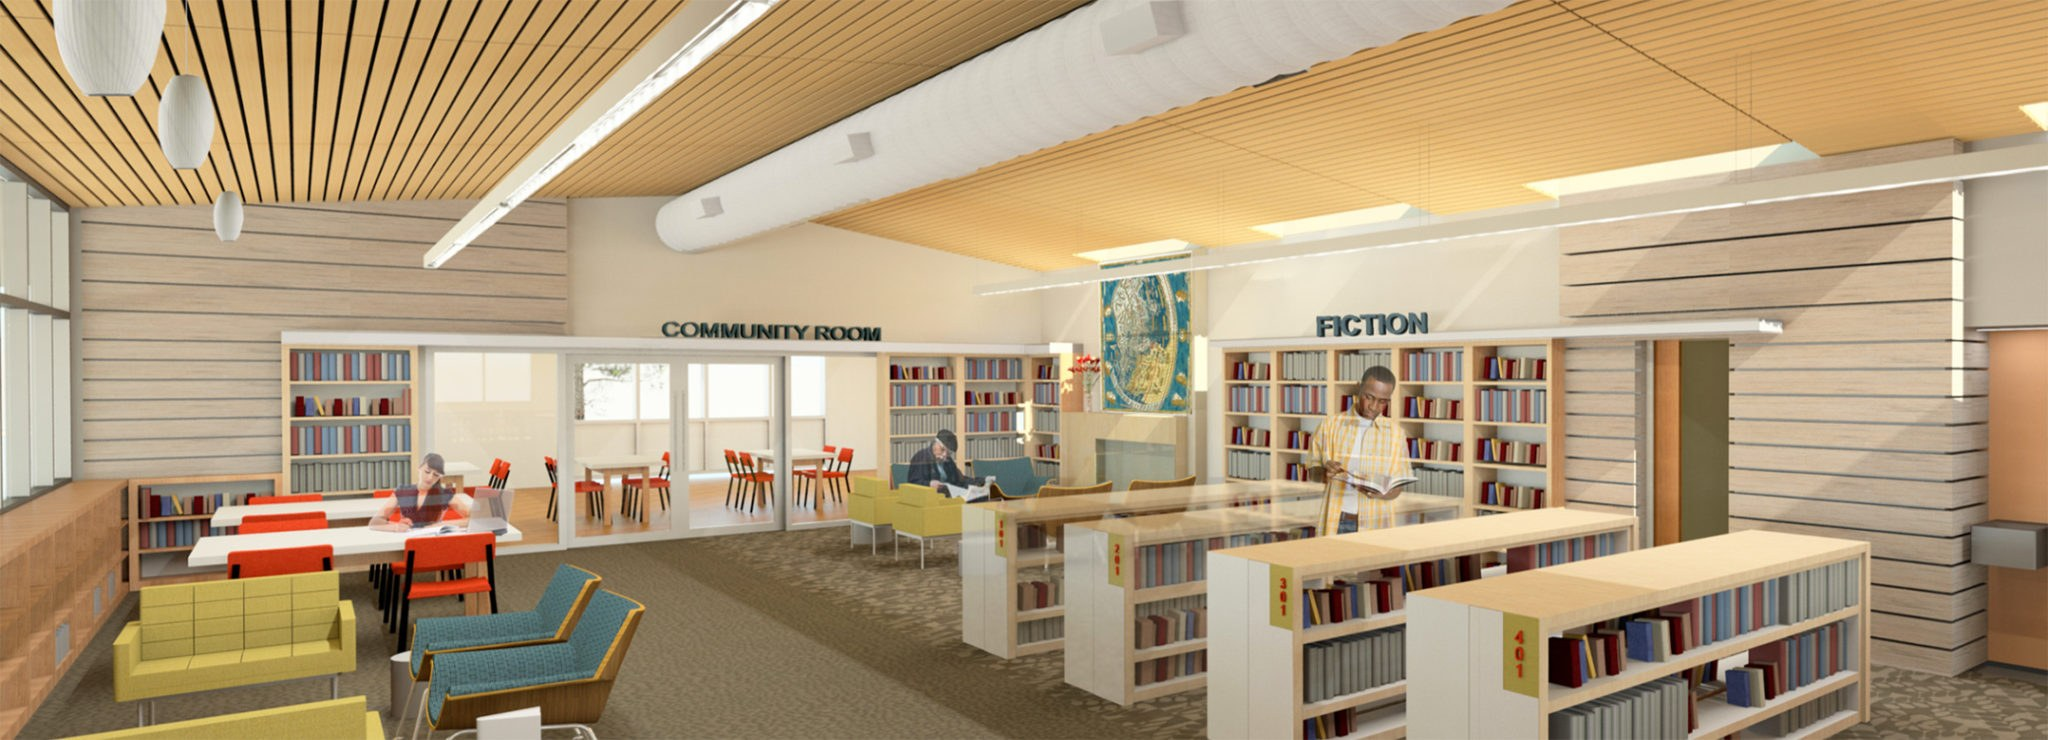 Mission Library Renovation Interior